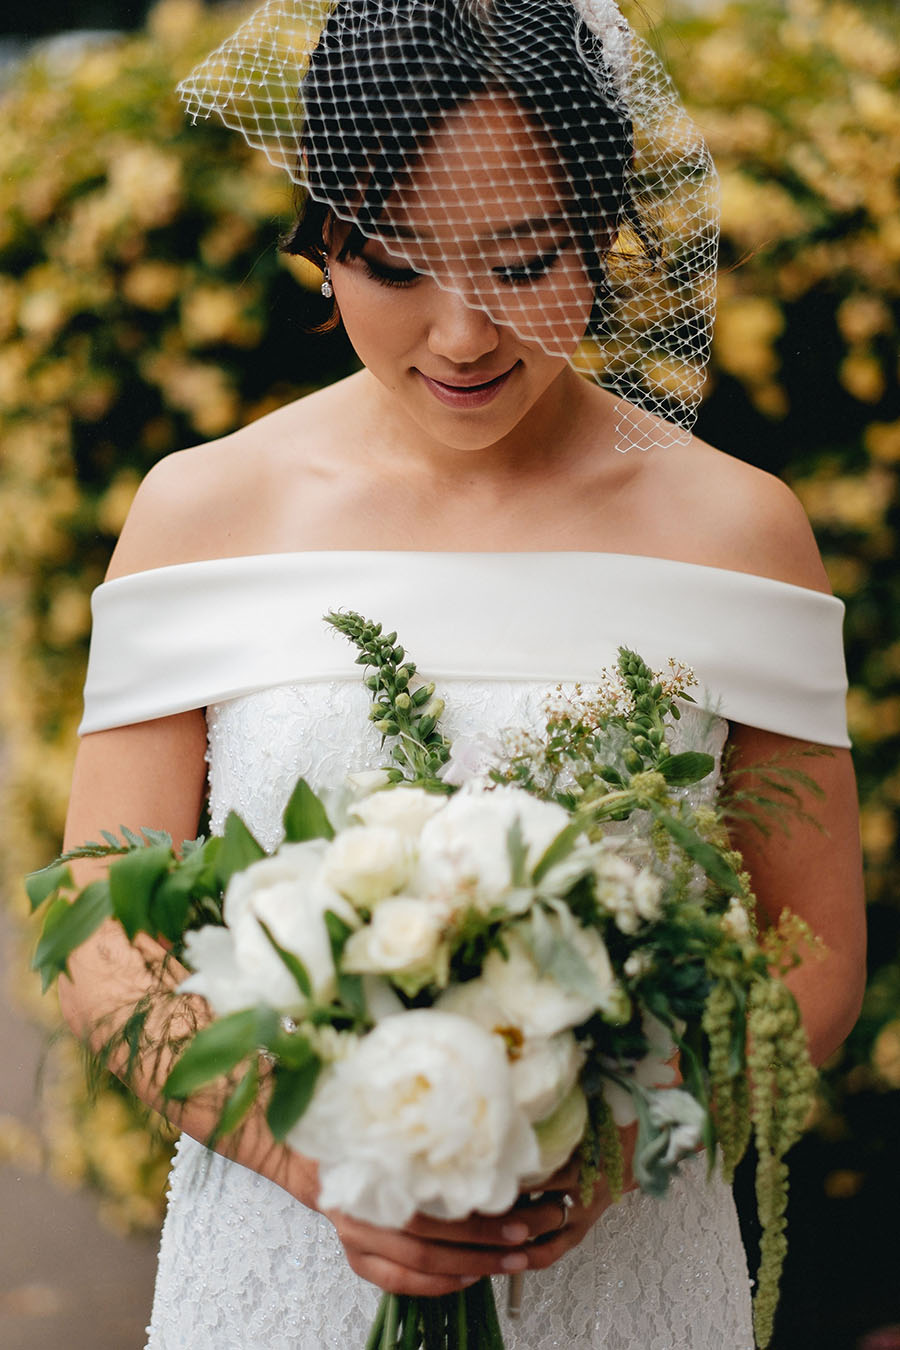 How to incorporate a family tradition or cultural elements into your wedding flowers